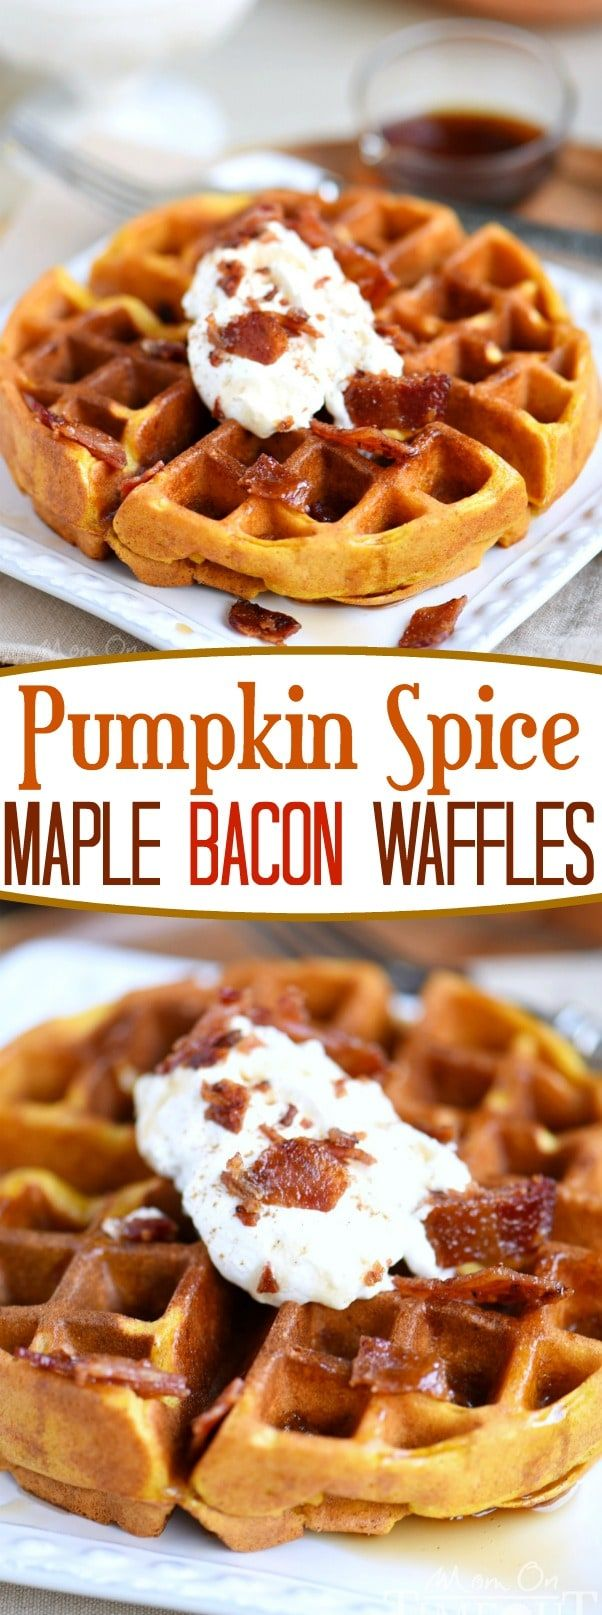 These Pumpkin Spice Maple Bacon Waffles are the perfect way to celebrate the most important meal of the day! Great for the holidays and all fall long! You're going to love the spiced maple bacon that's inside each waffle - so good! // Mom On Timeout (Sponsored by Hungry Jack)